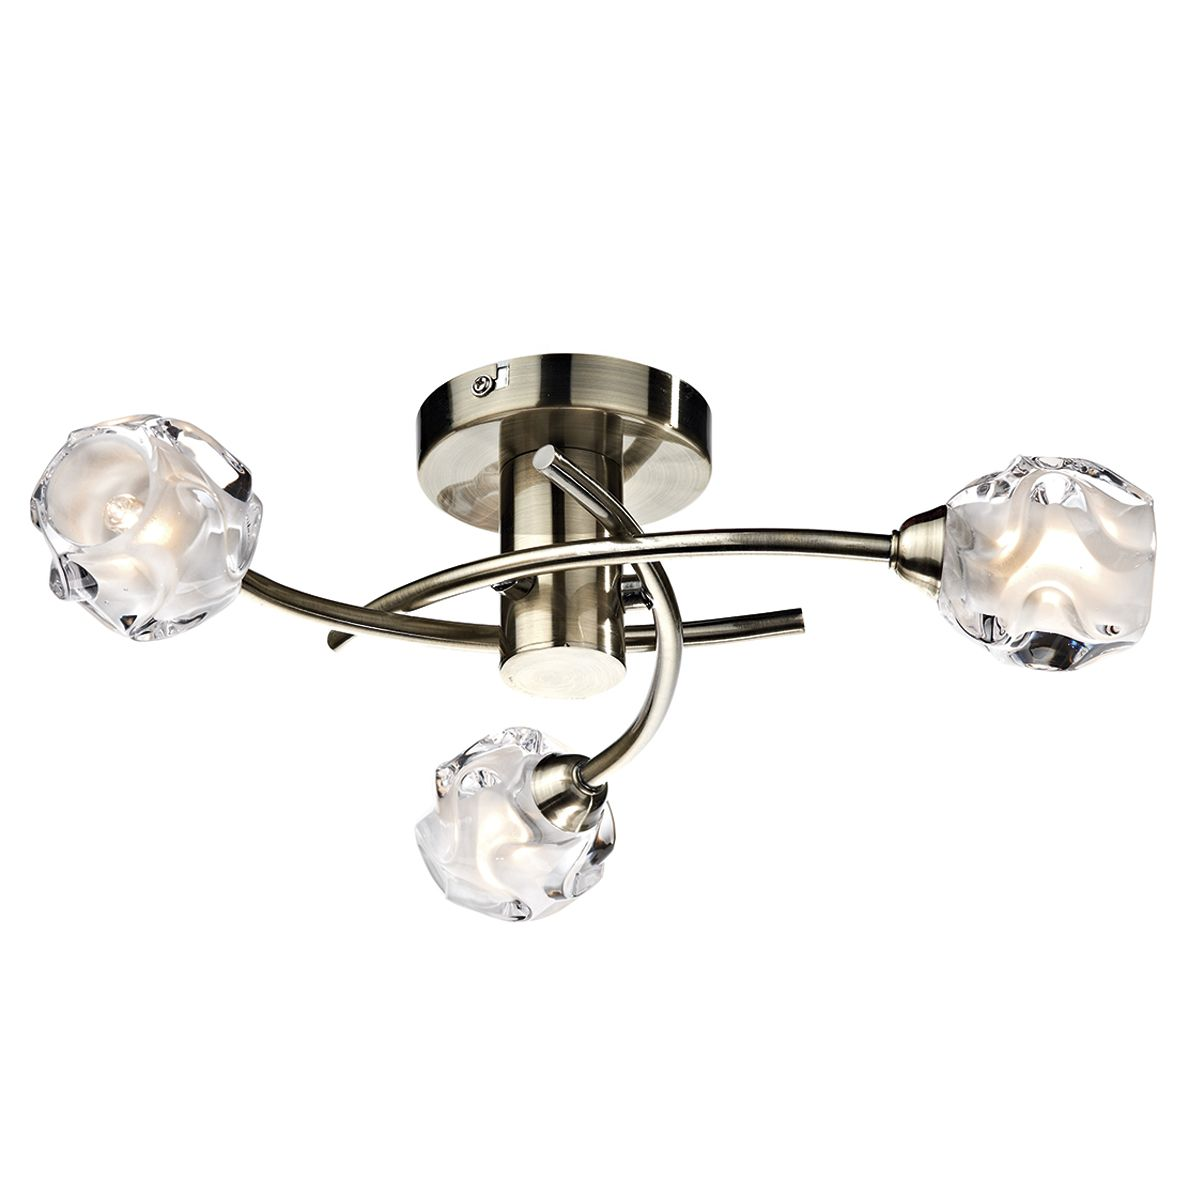 Dar Lighting Seattle 3 light semi flush